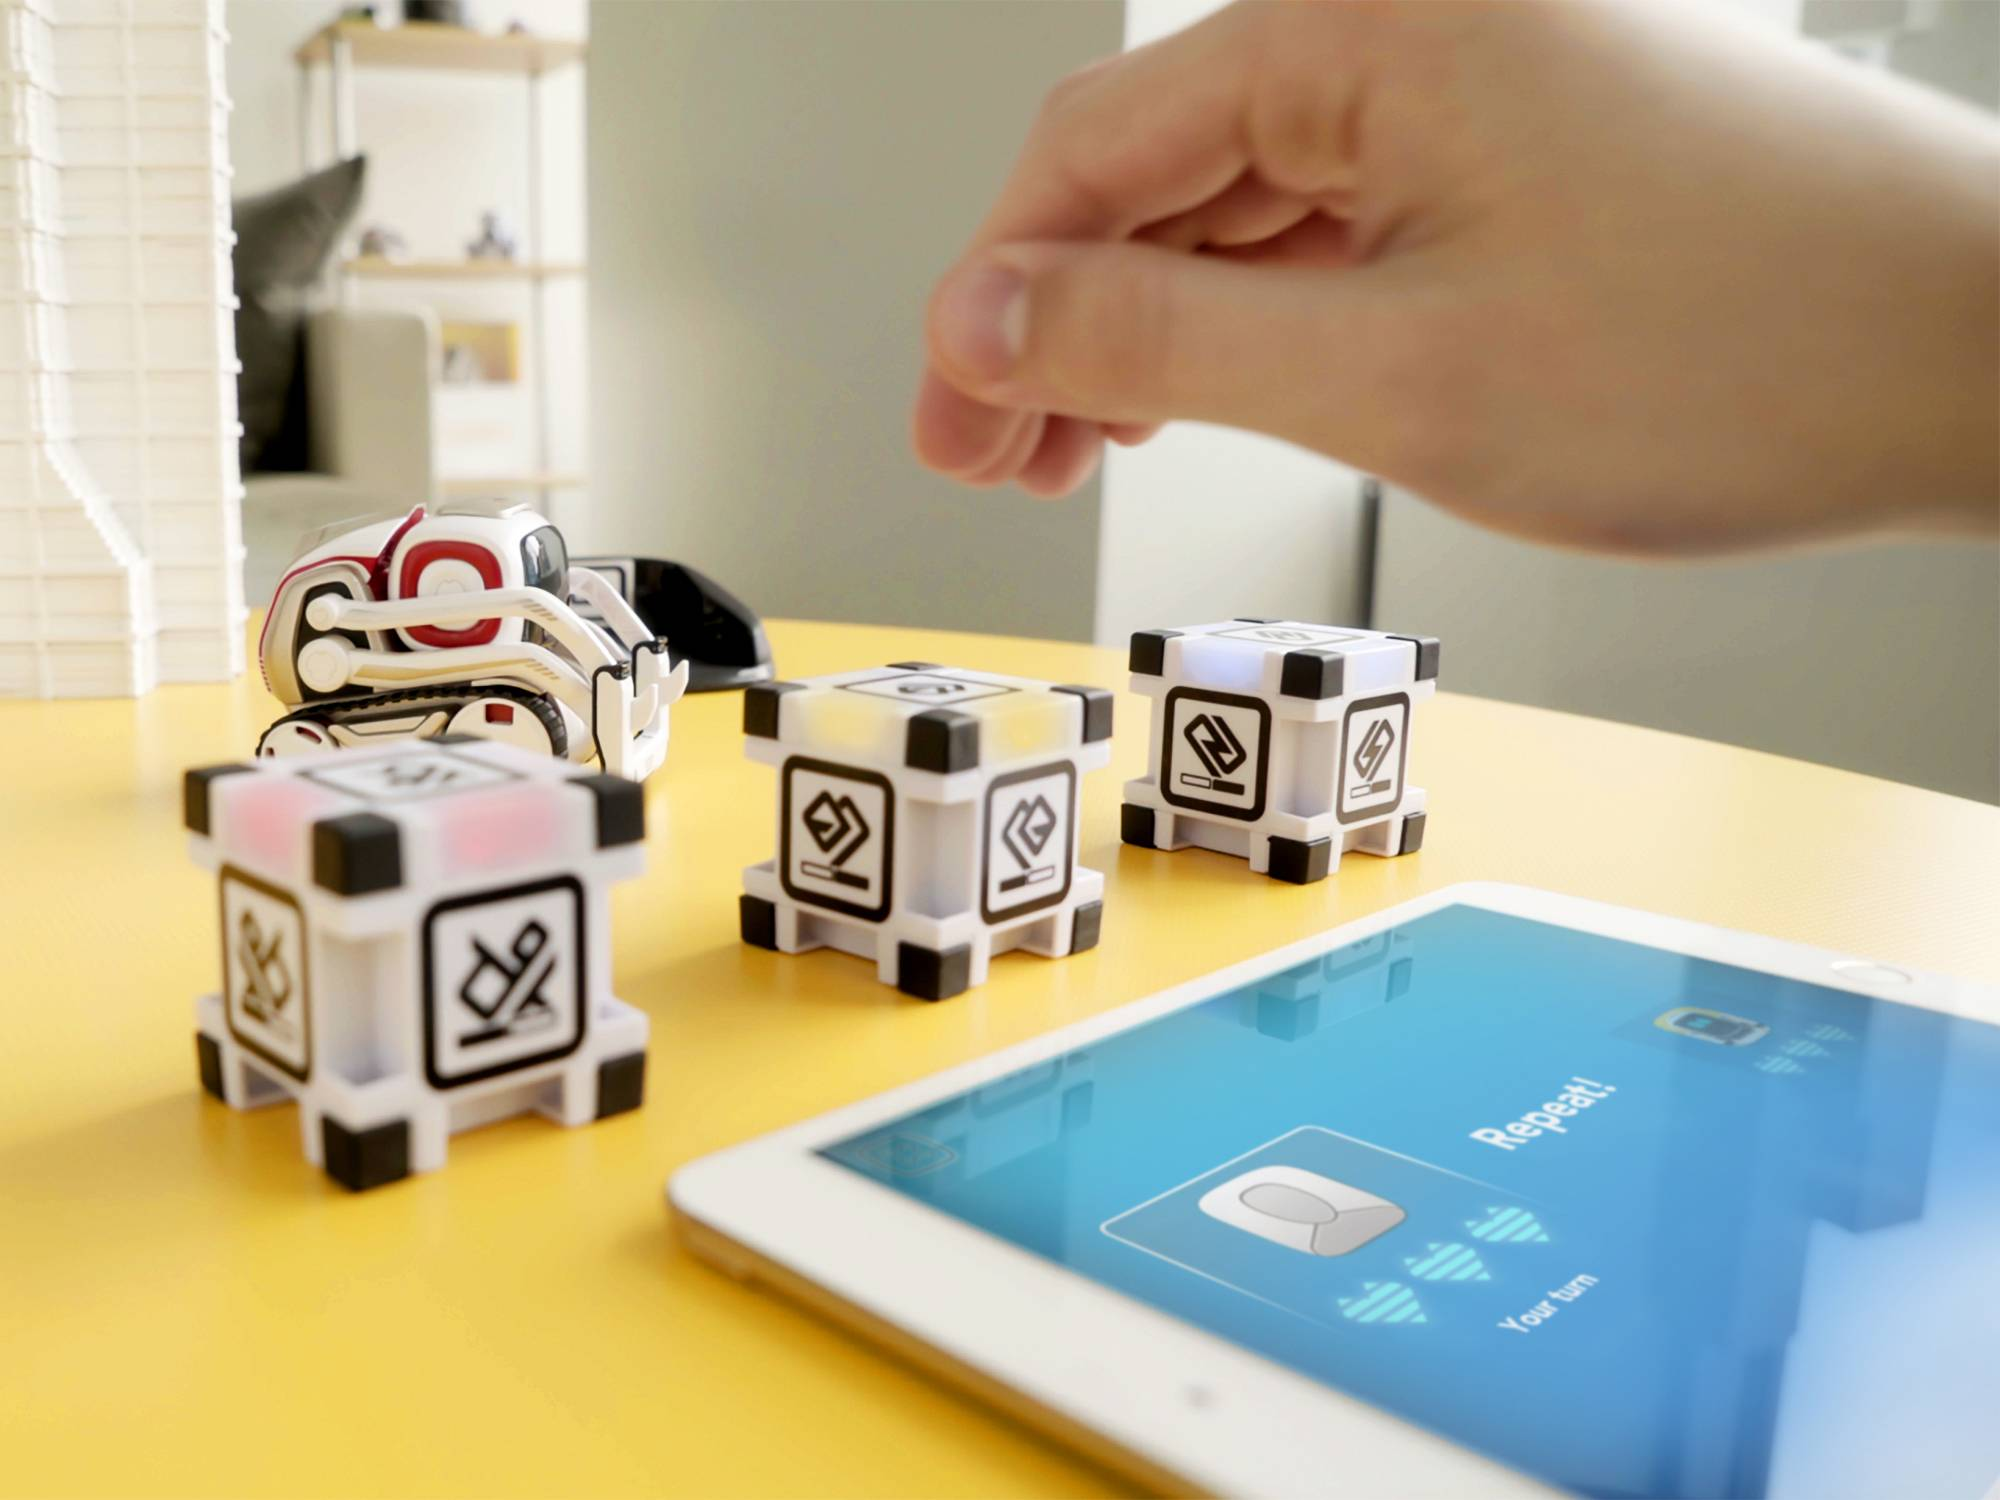 The Cozmo Memory Match game is both educational and fun for the kids.